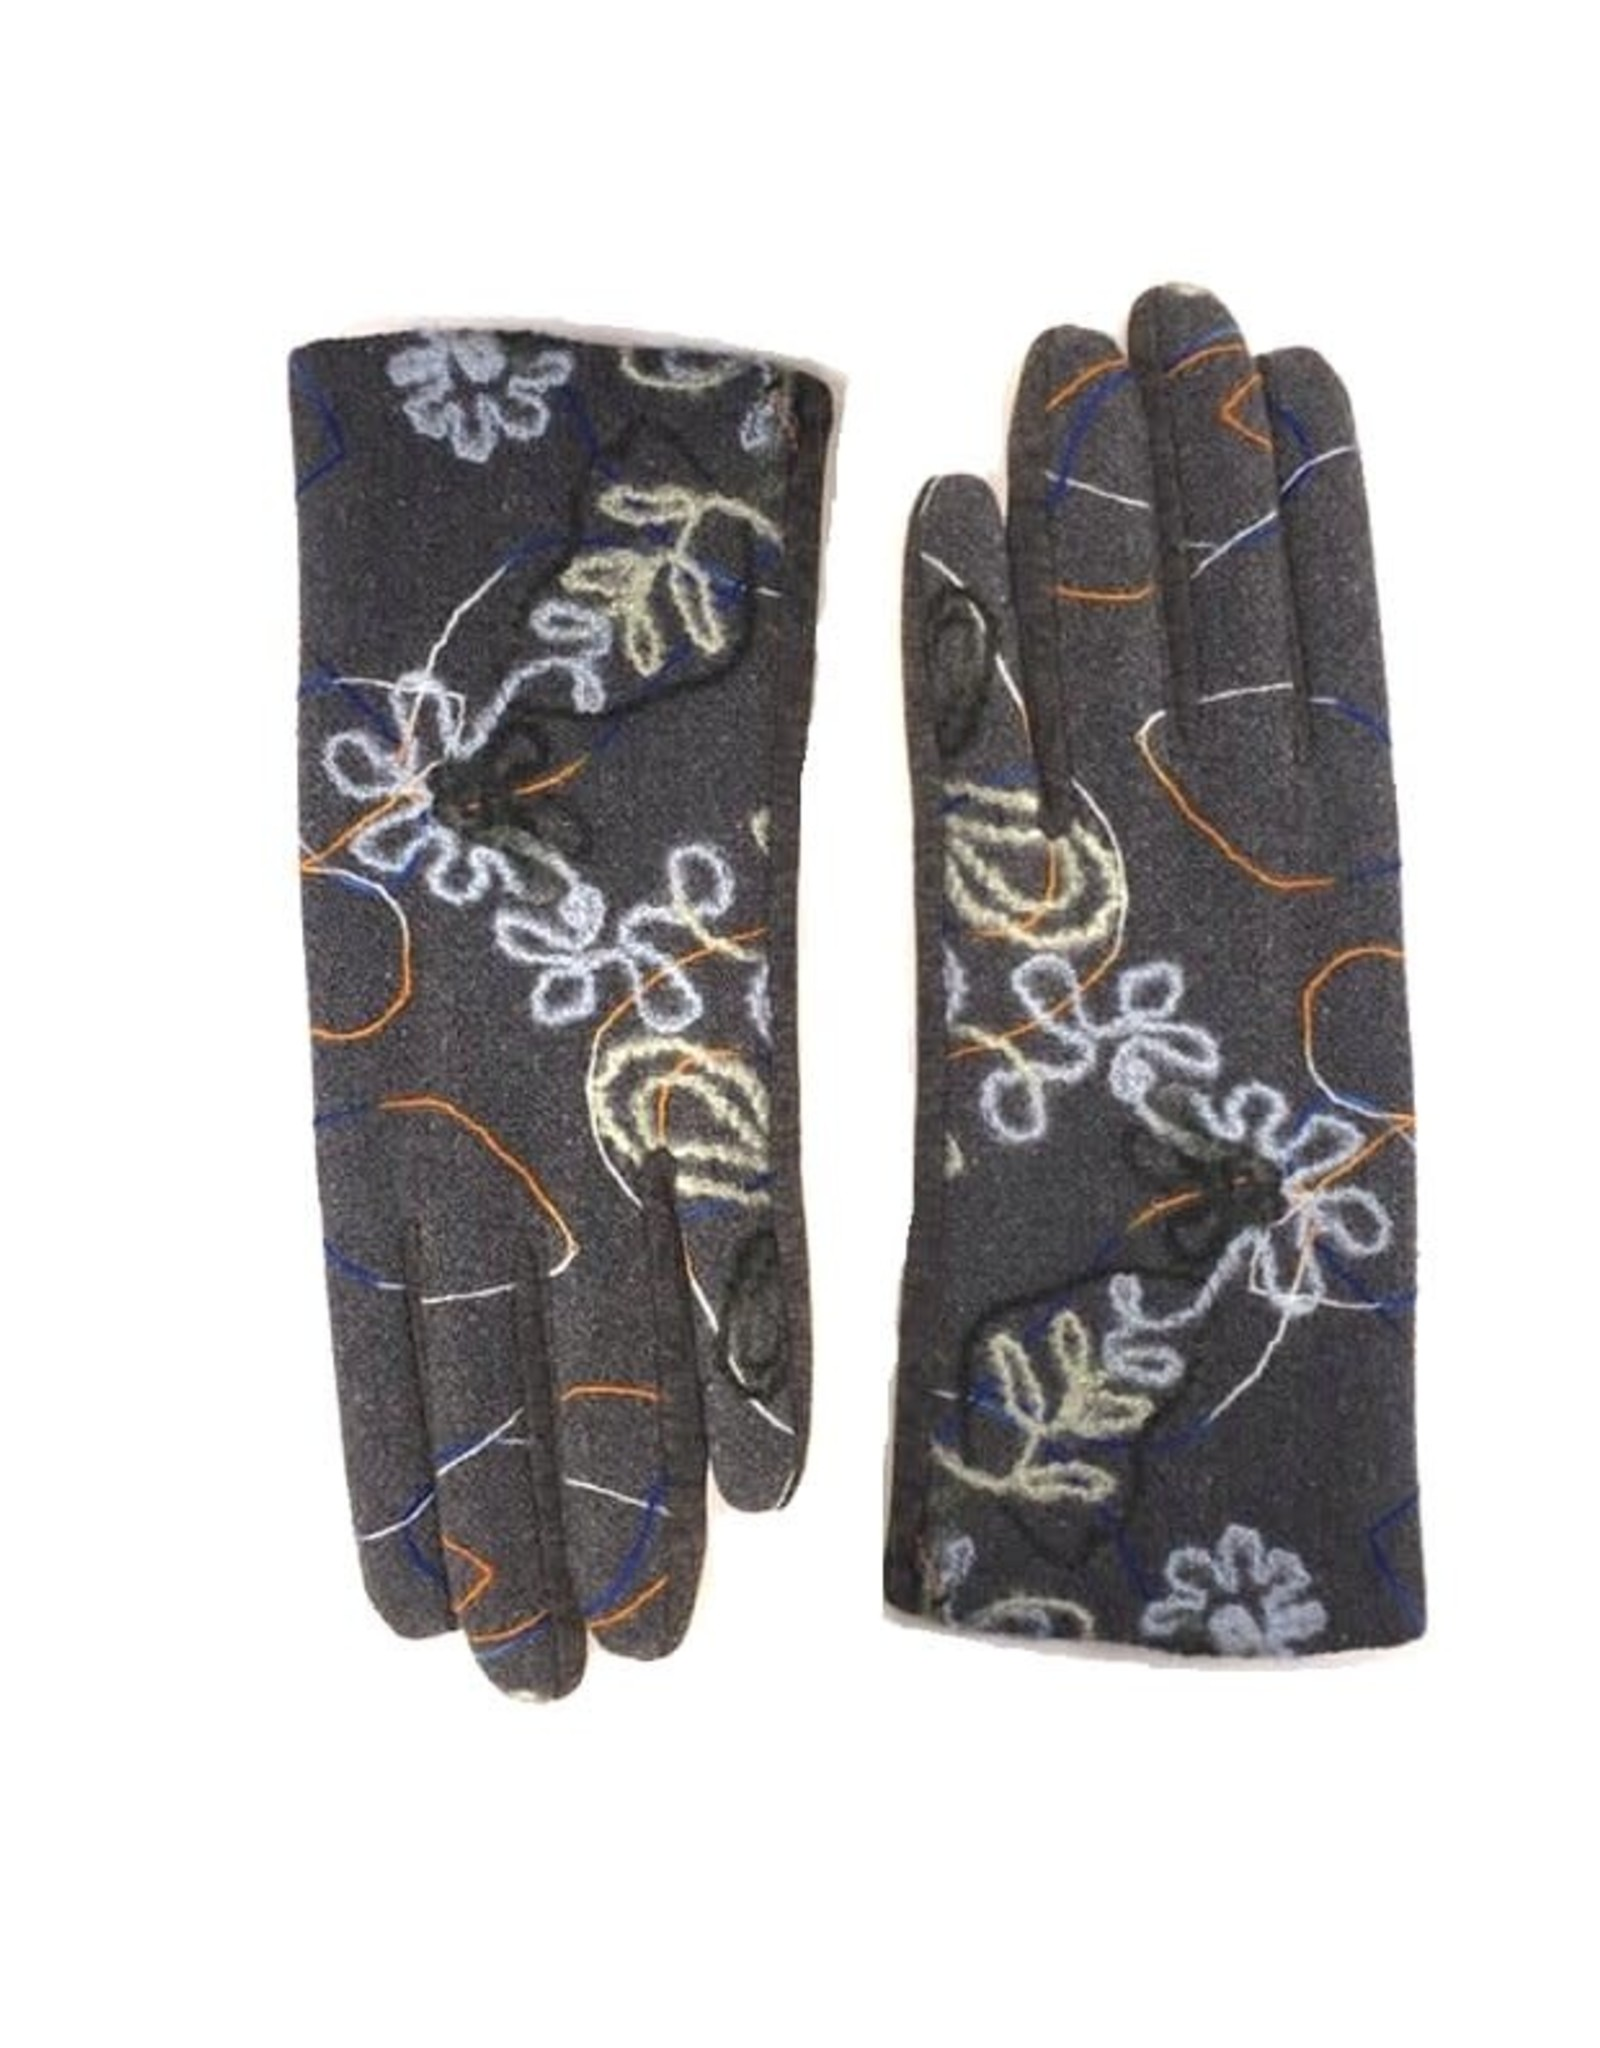 JUSTIN GREGORY - Embroidered Gloves